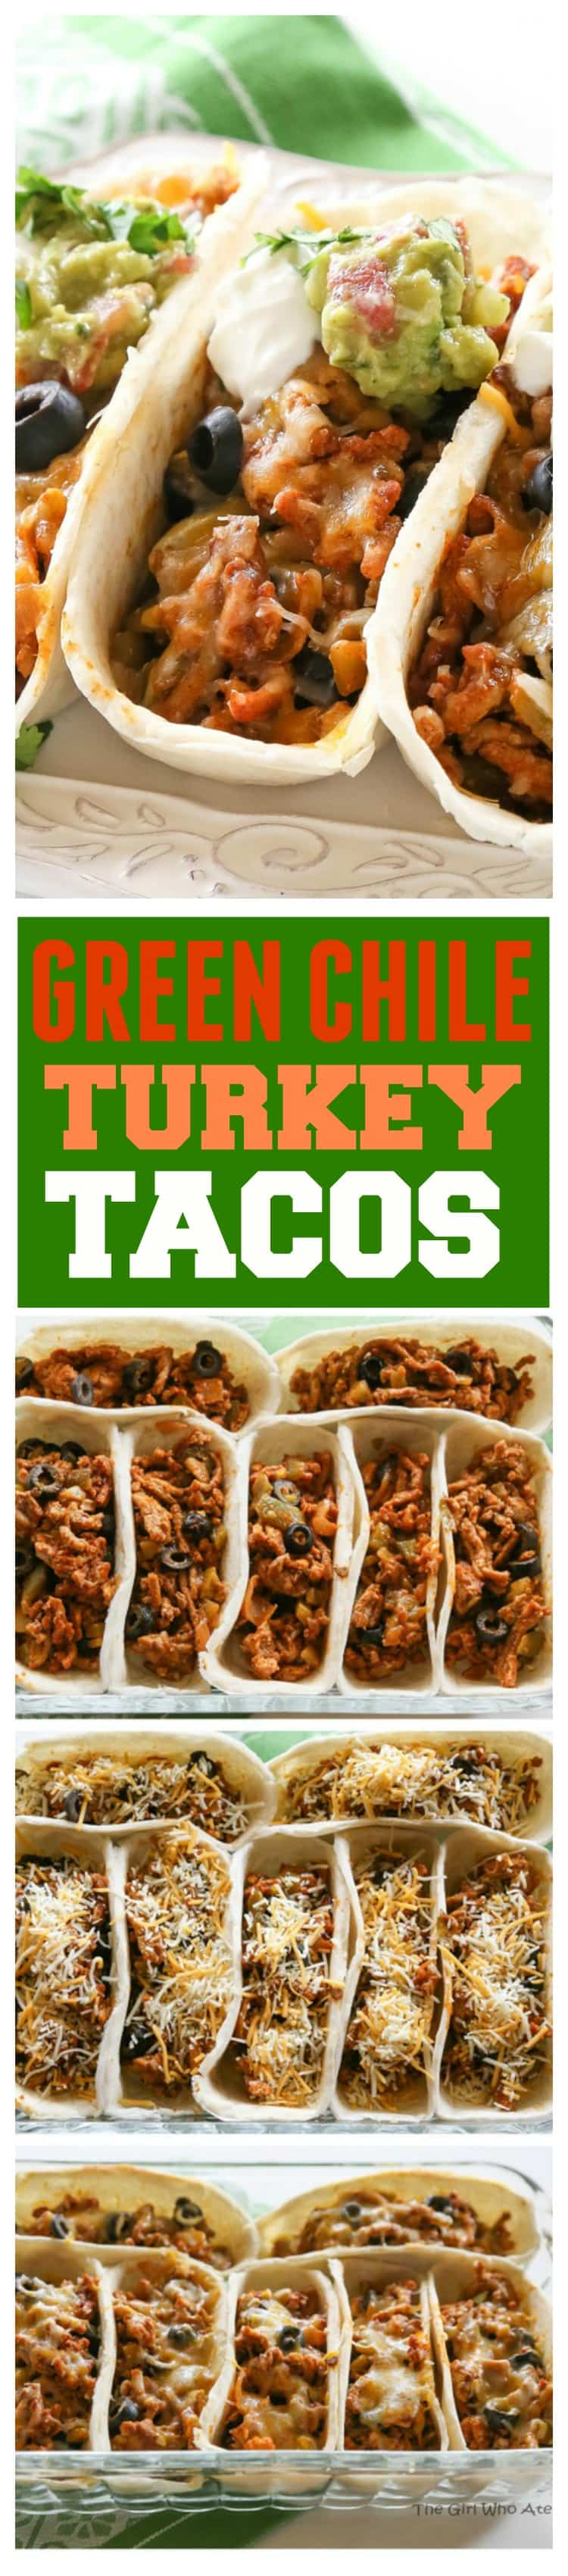 These Green Chile Turkey Tacos are packed with flavor and so easy. Green chilies and olives are added to the meat mixture. Even non-turkey lovers won't complain about these tasty tacos. #turkey #tacos #mexican #dinner #recipe #healthy